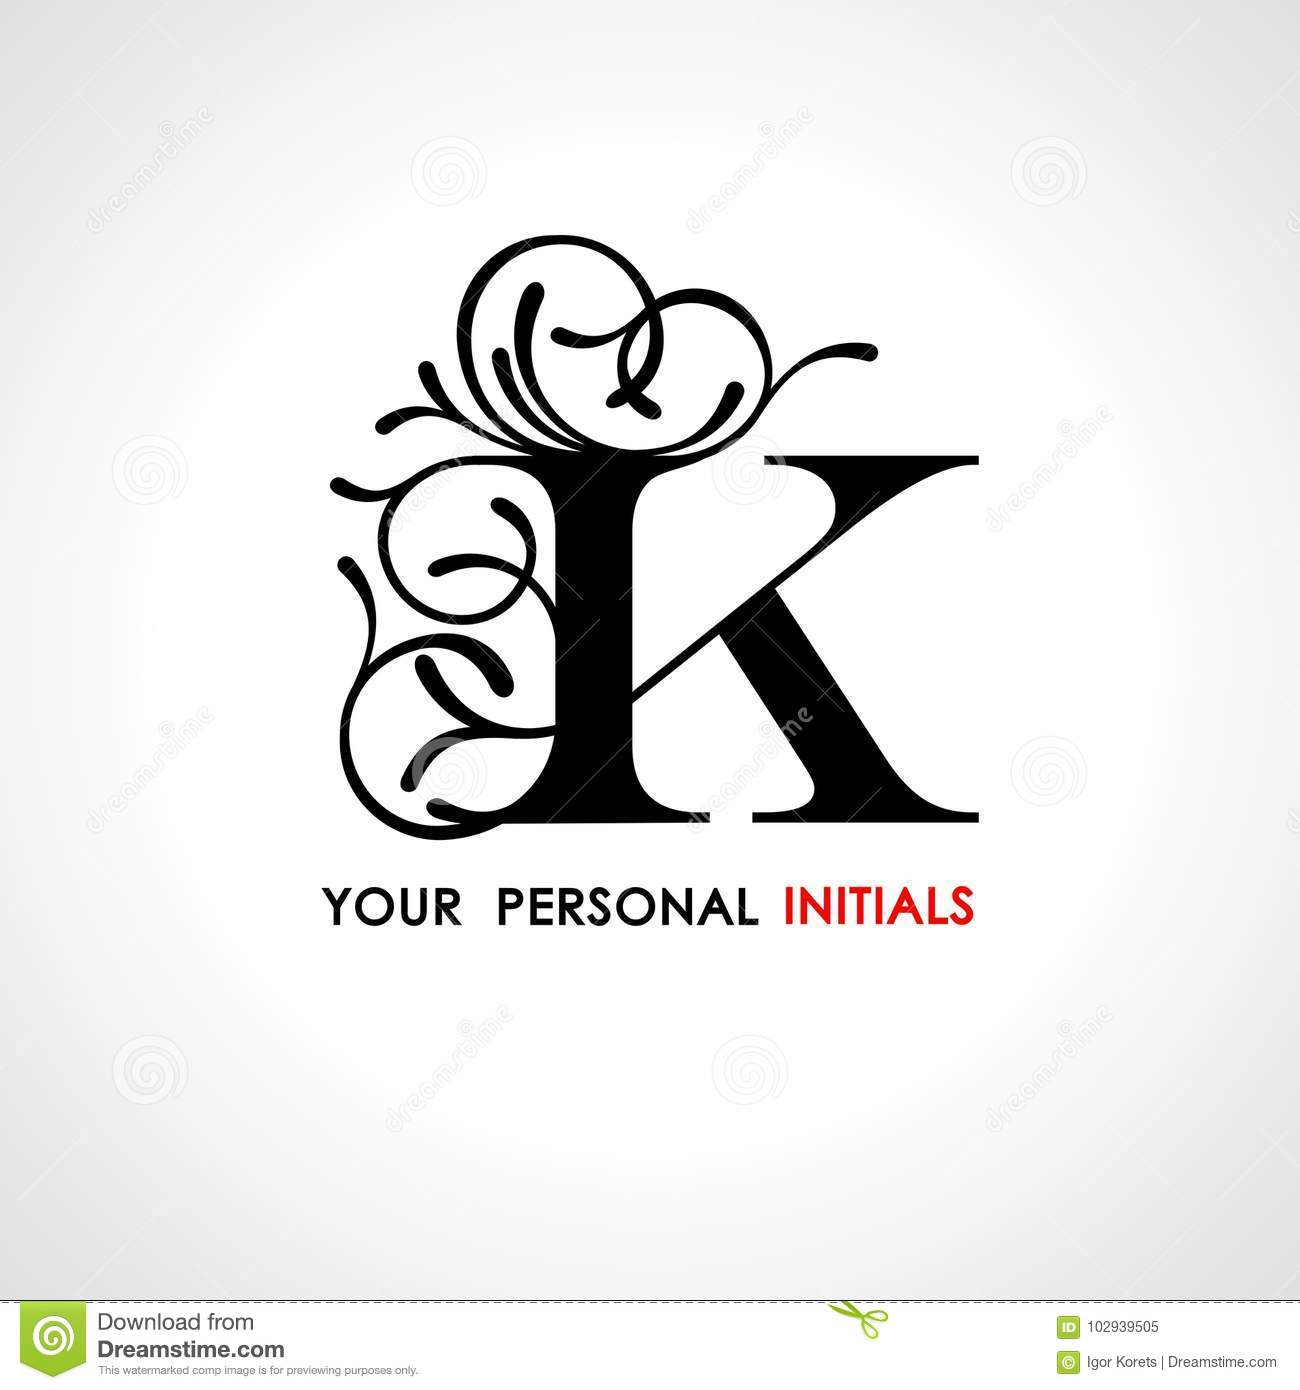 capital letter k decorated with vegetable ornament template for